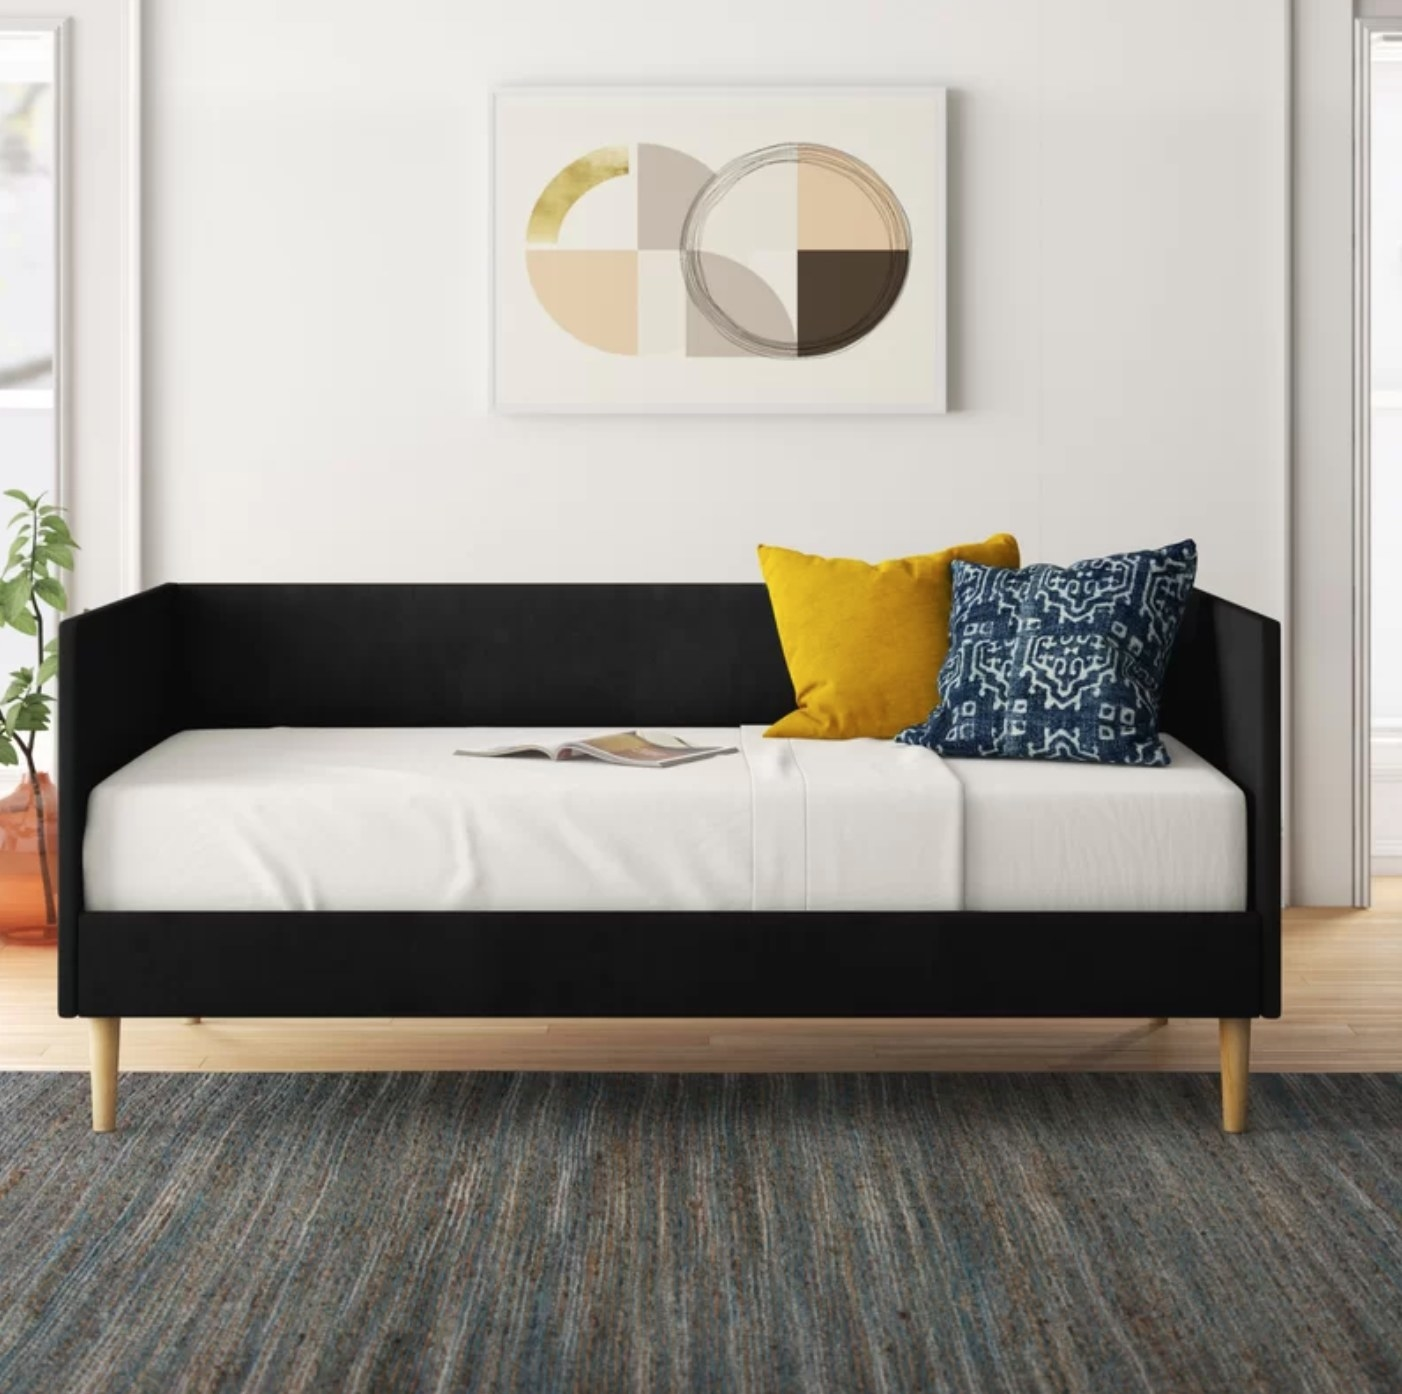 The daybed in black velvet